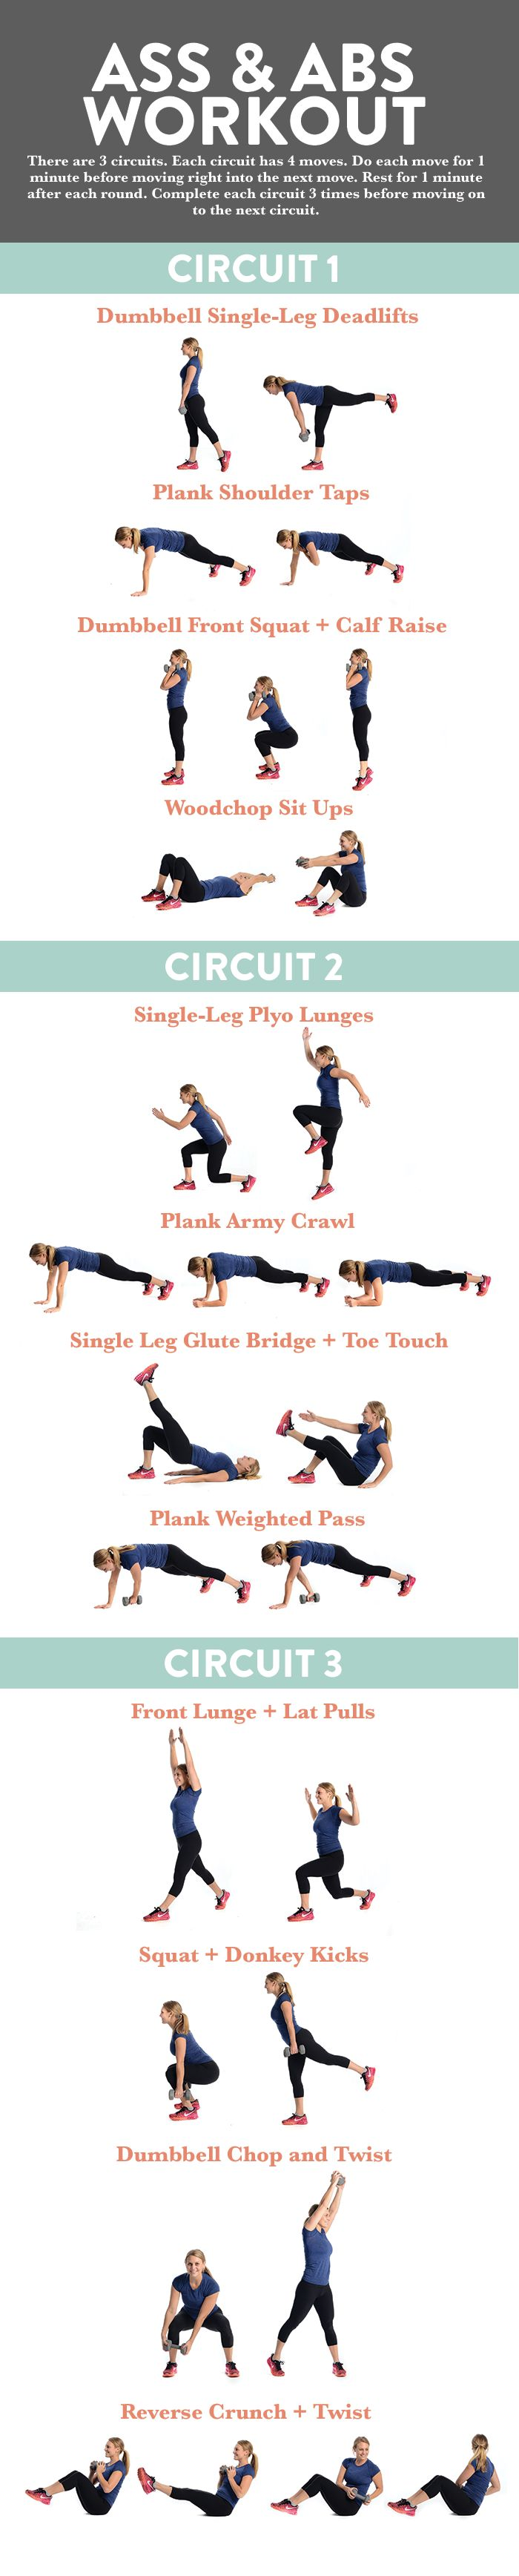 Best 25+ Ab workouts ideas on Pinterest | Abdominal